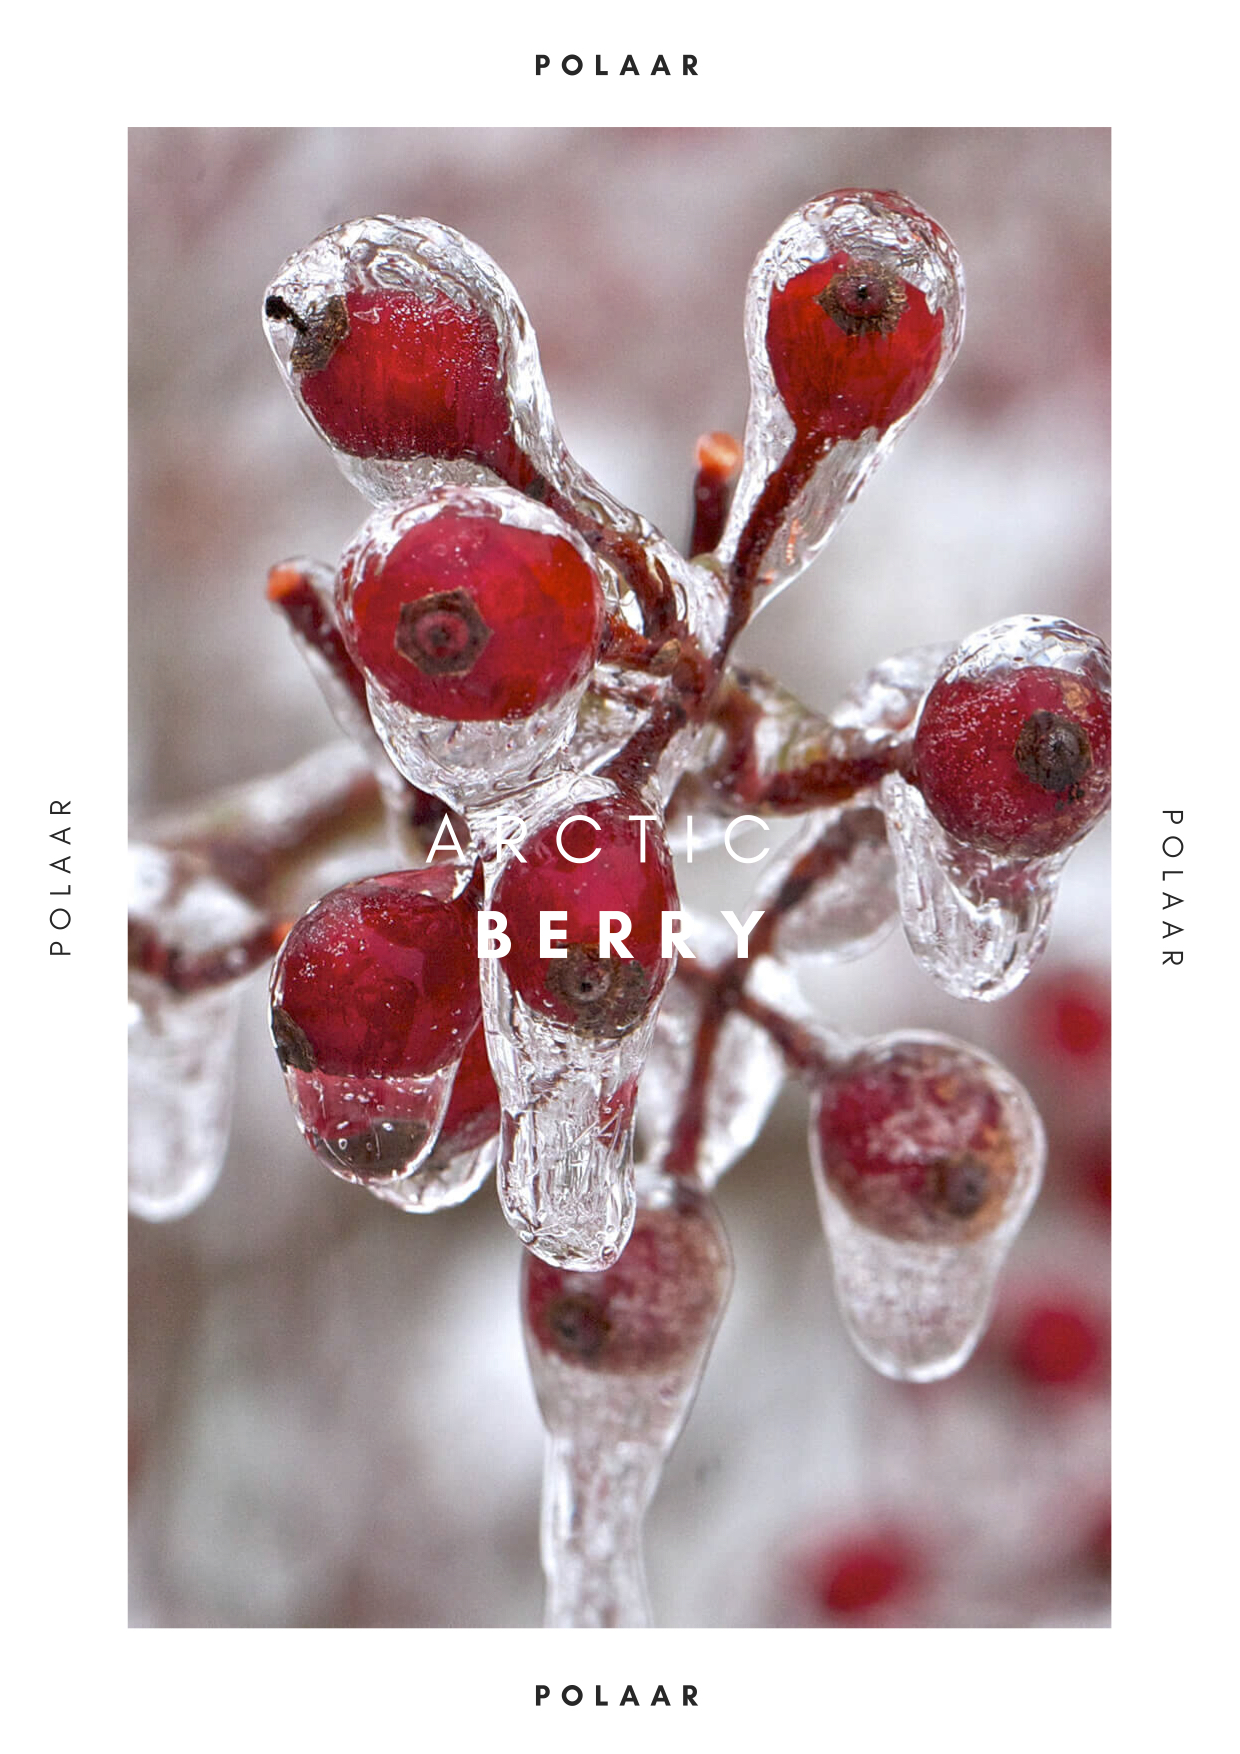 Polaar - Arctic Berry